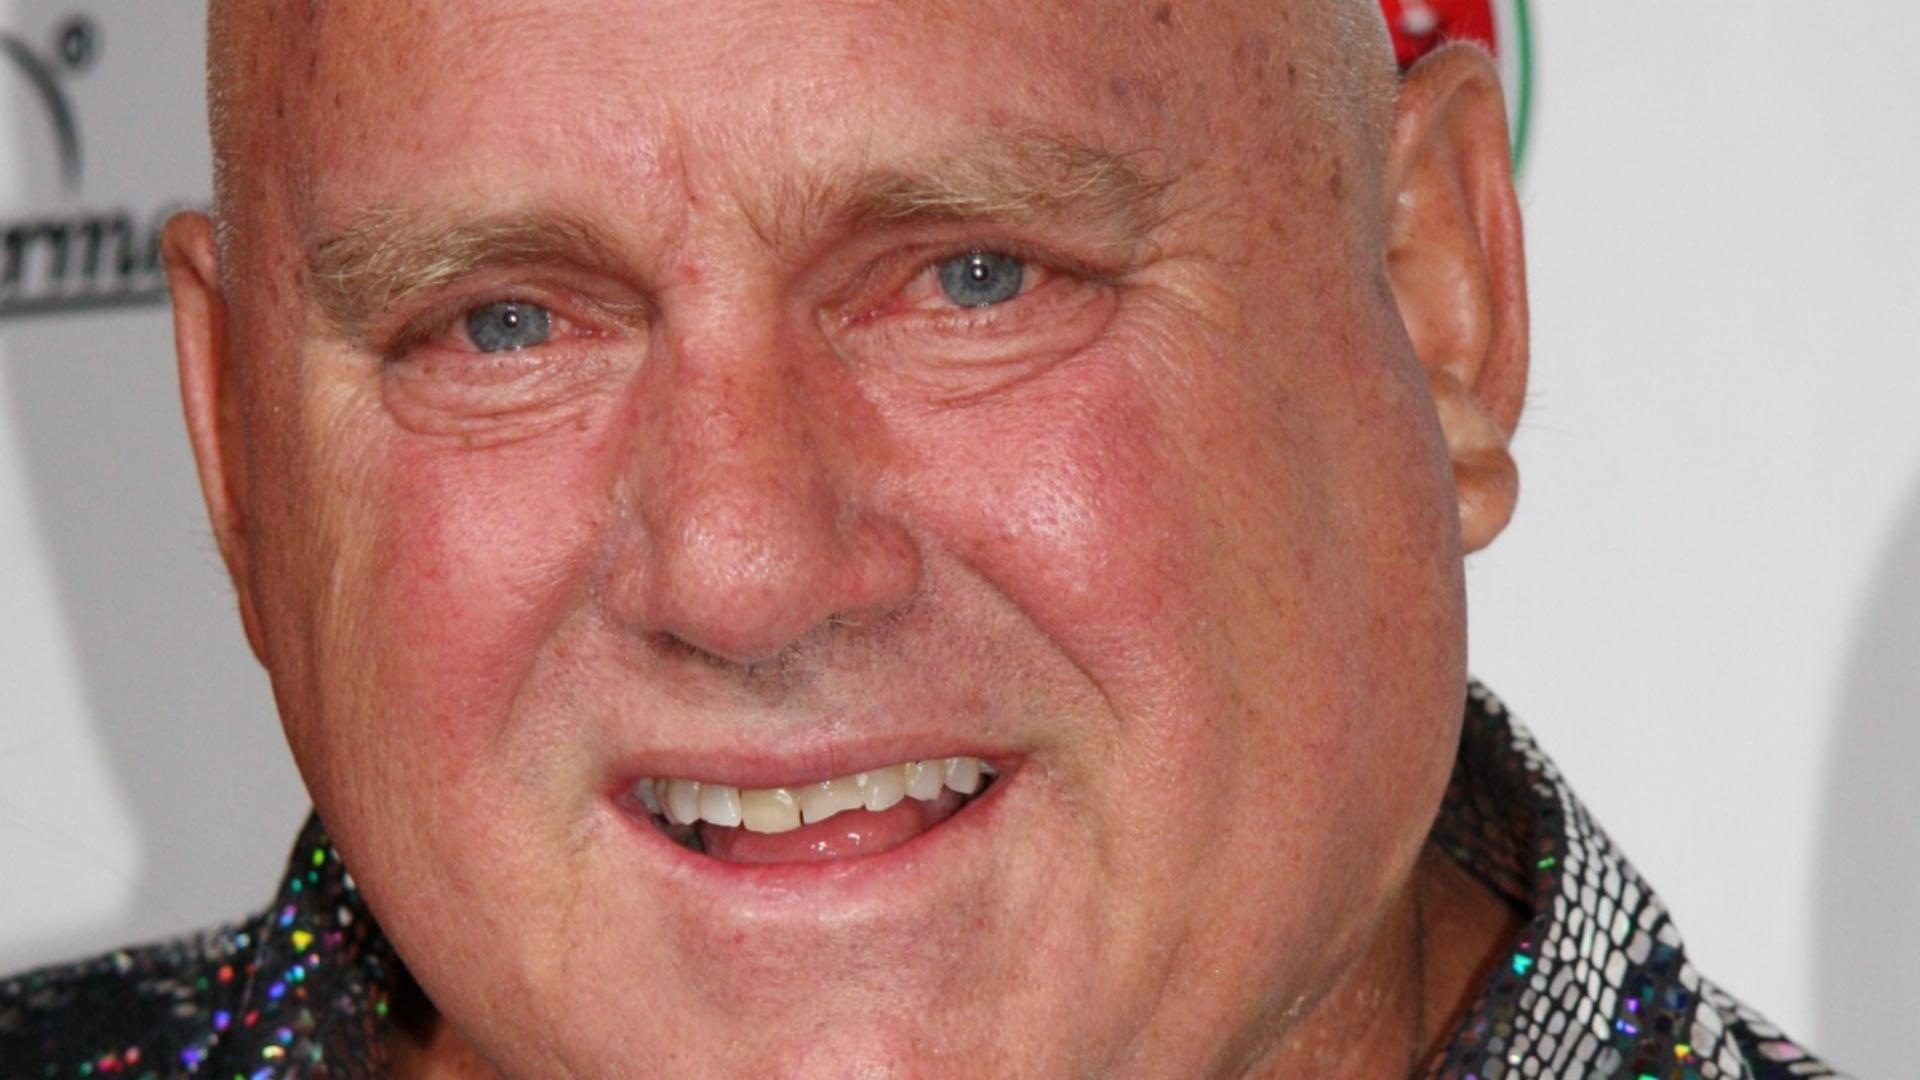 Weird, Odd and Bizarre News - Famed Brothel Owner Dennis Hof Expected to Win Election, Despite Death